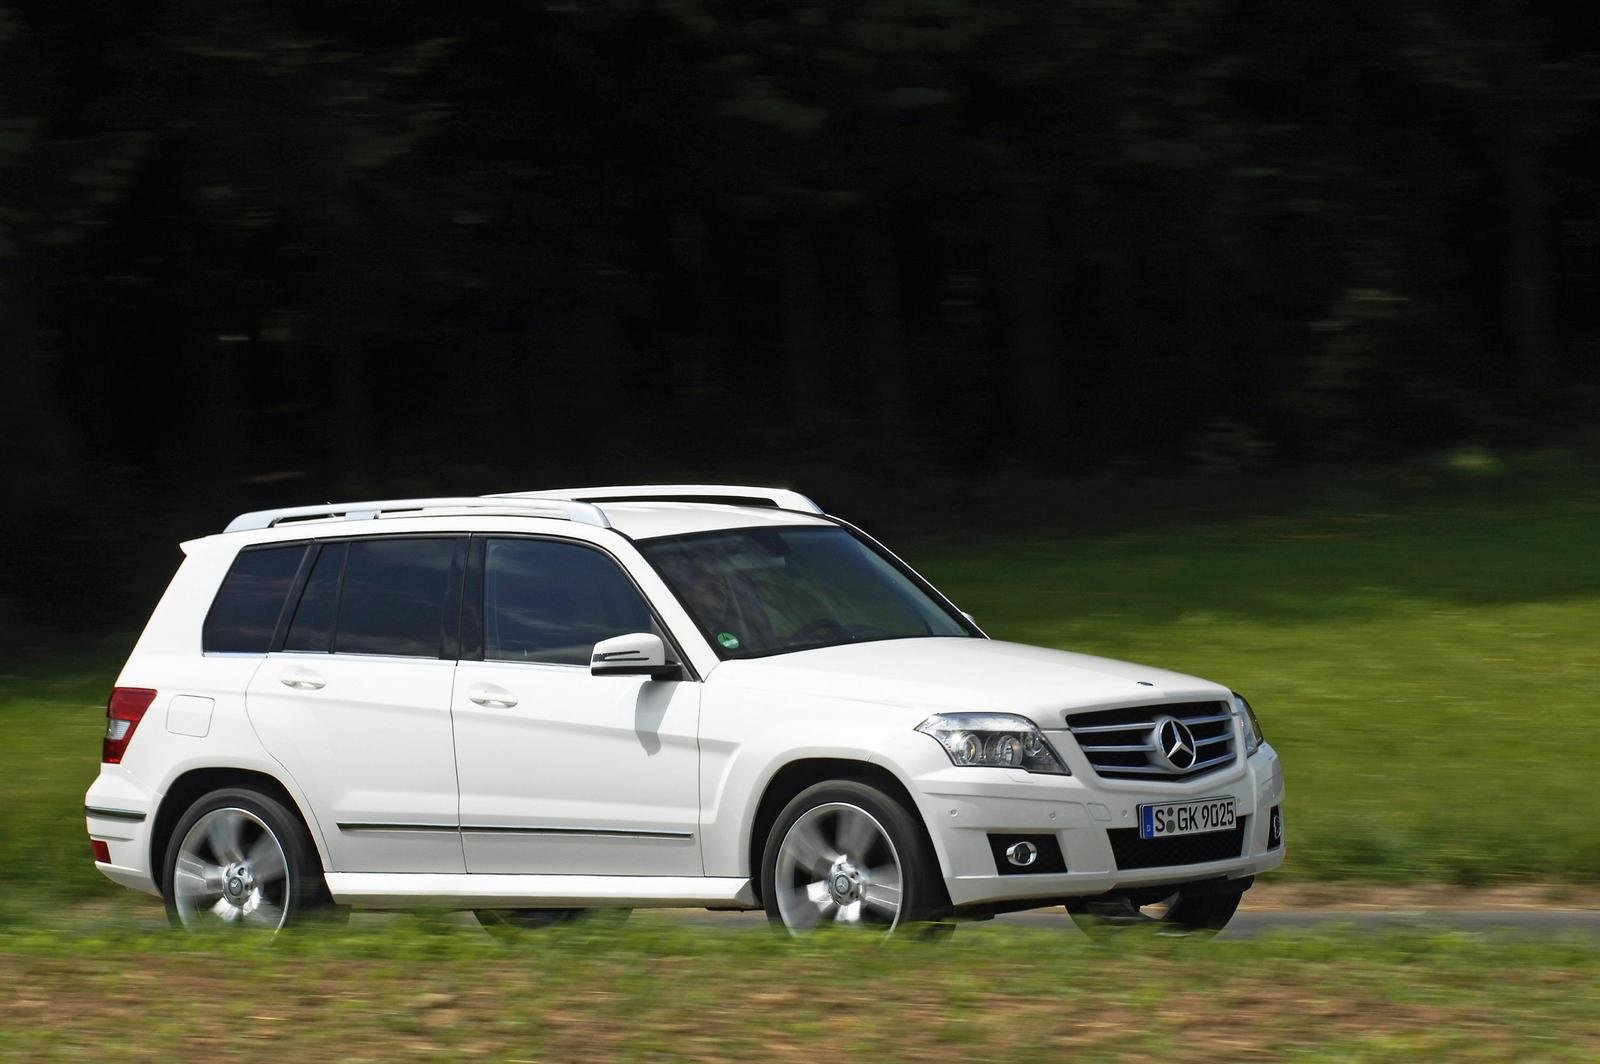 2010 mercedes glk class picture 256487 car review top speed. Black Bedroom Furniture Sets. Home Design Ideas